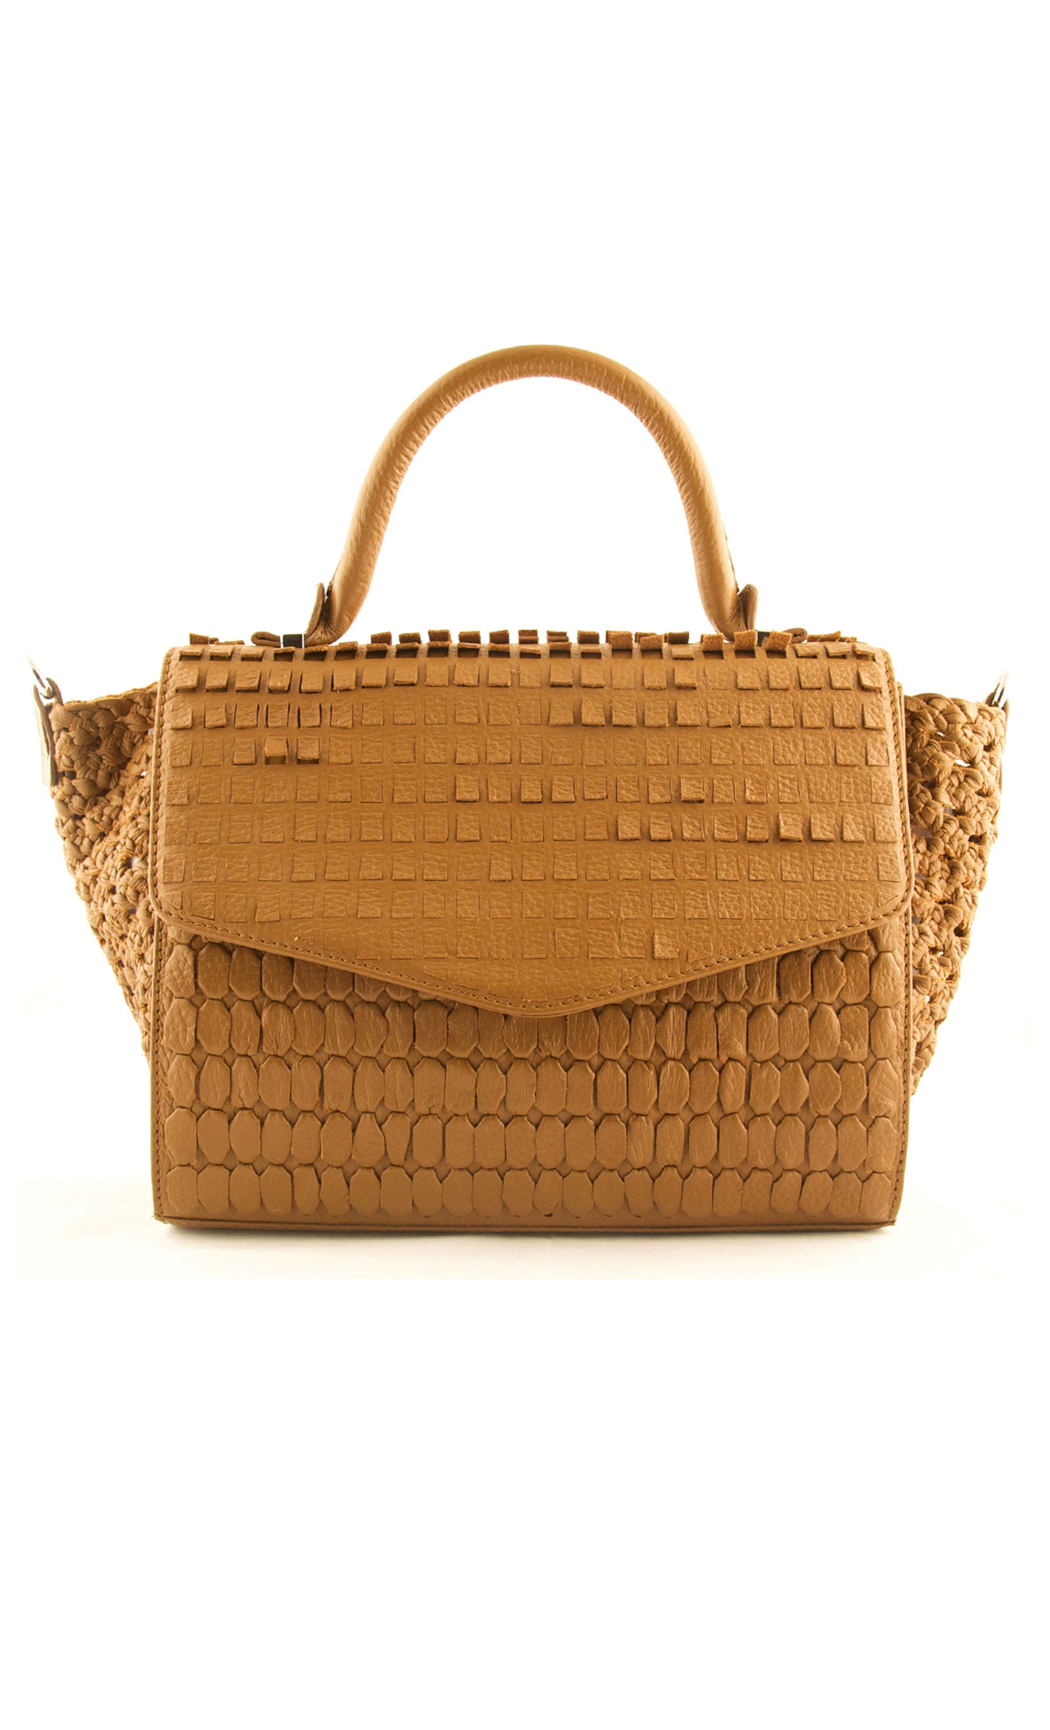 Mixed Weave Curved Flap Satchel in Tan. Buy Online